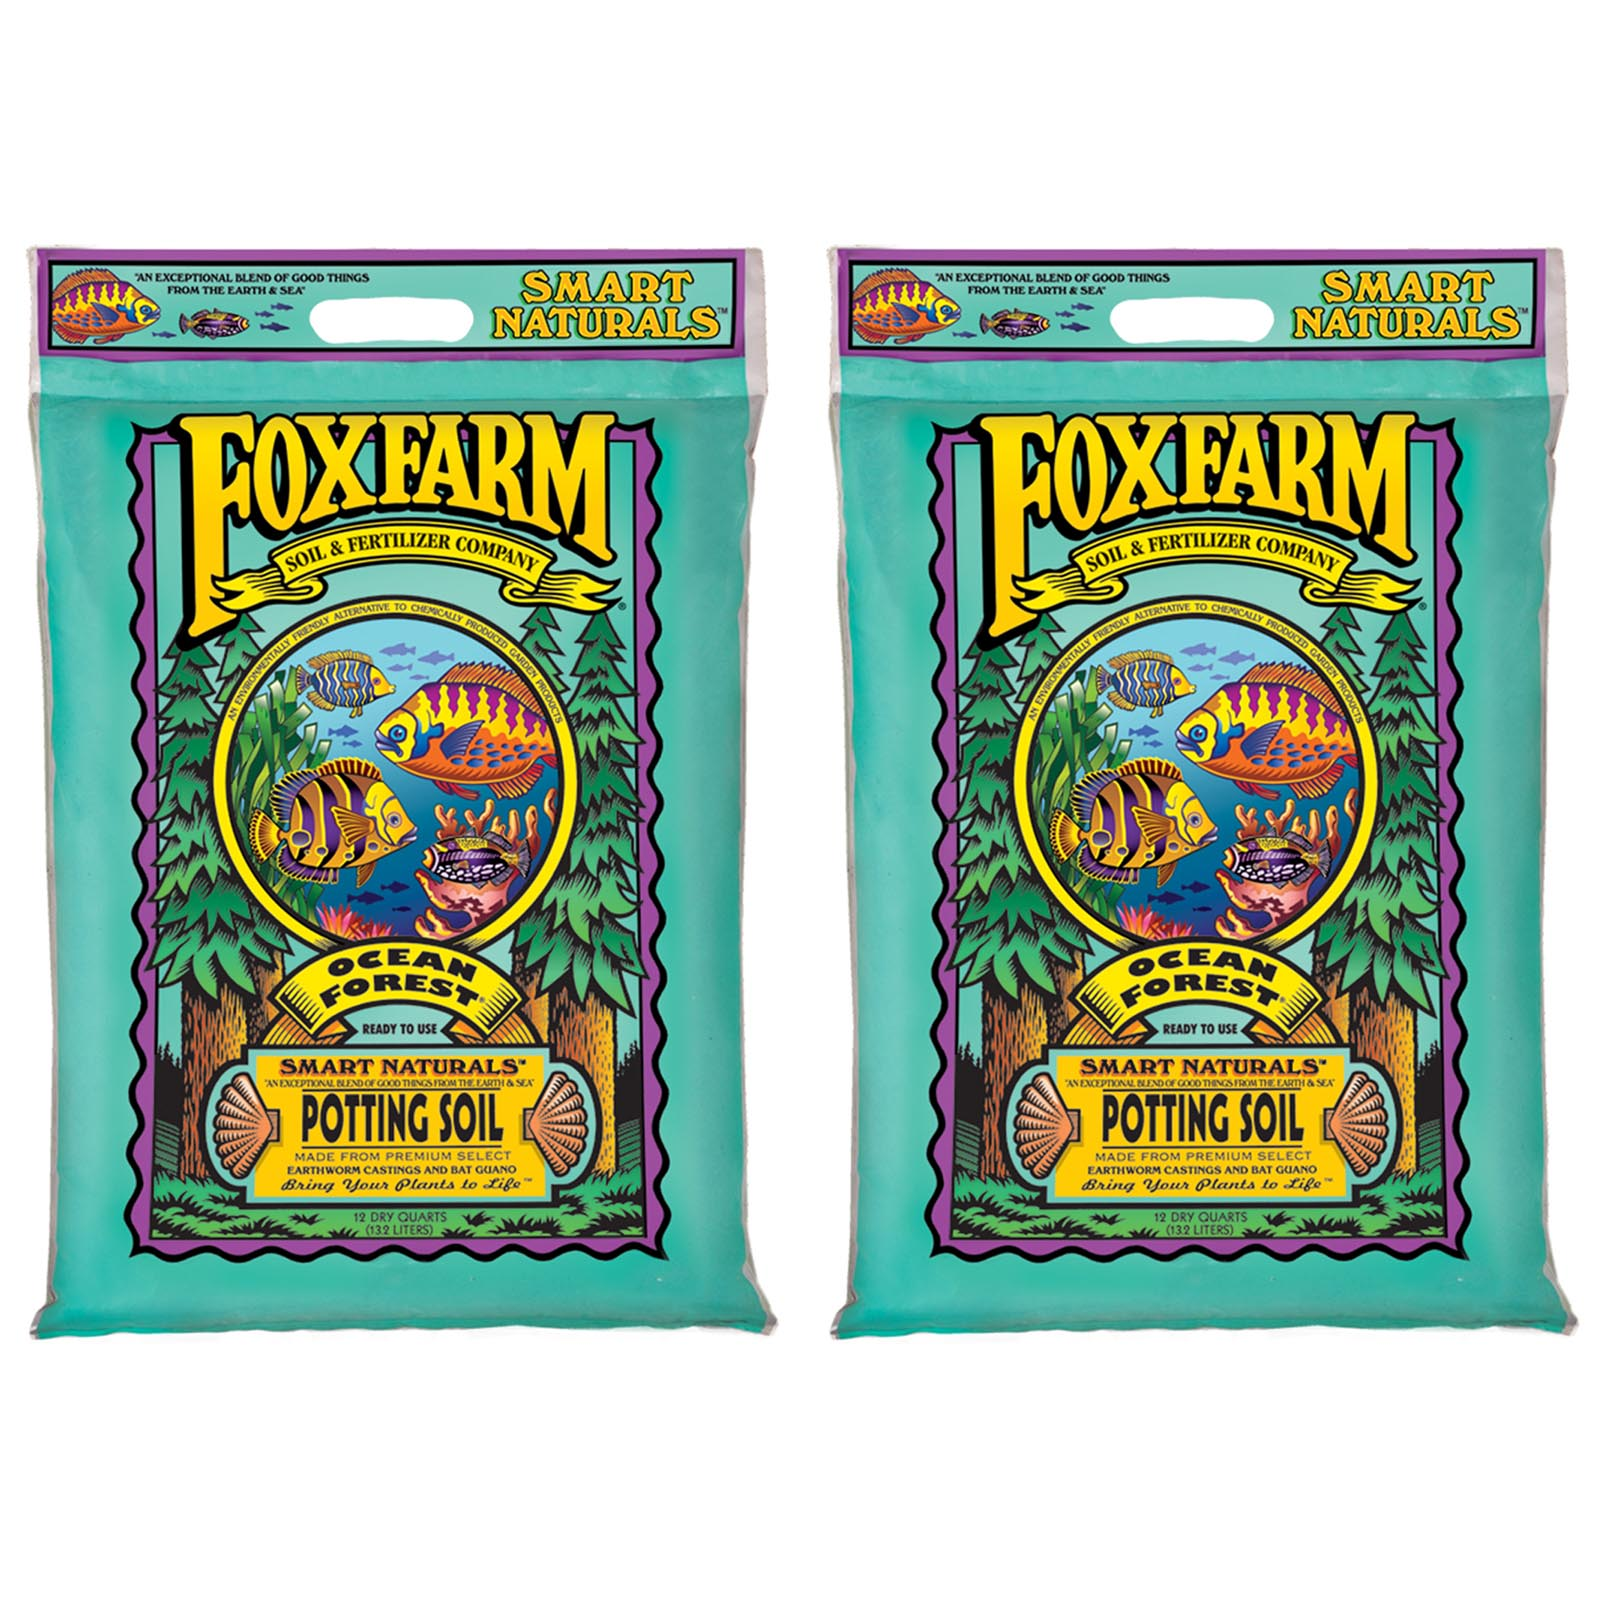 (2) FOXFARM FX14053 12 Quart Ocean Forest Garden Potting Soil Bags - 6.3-6.8 pH